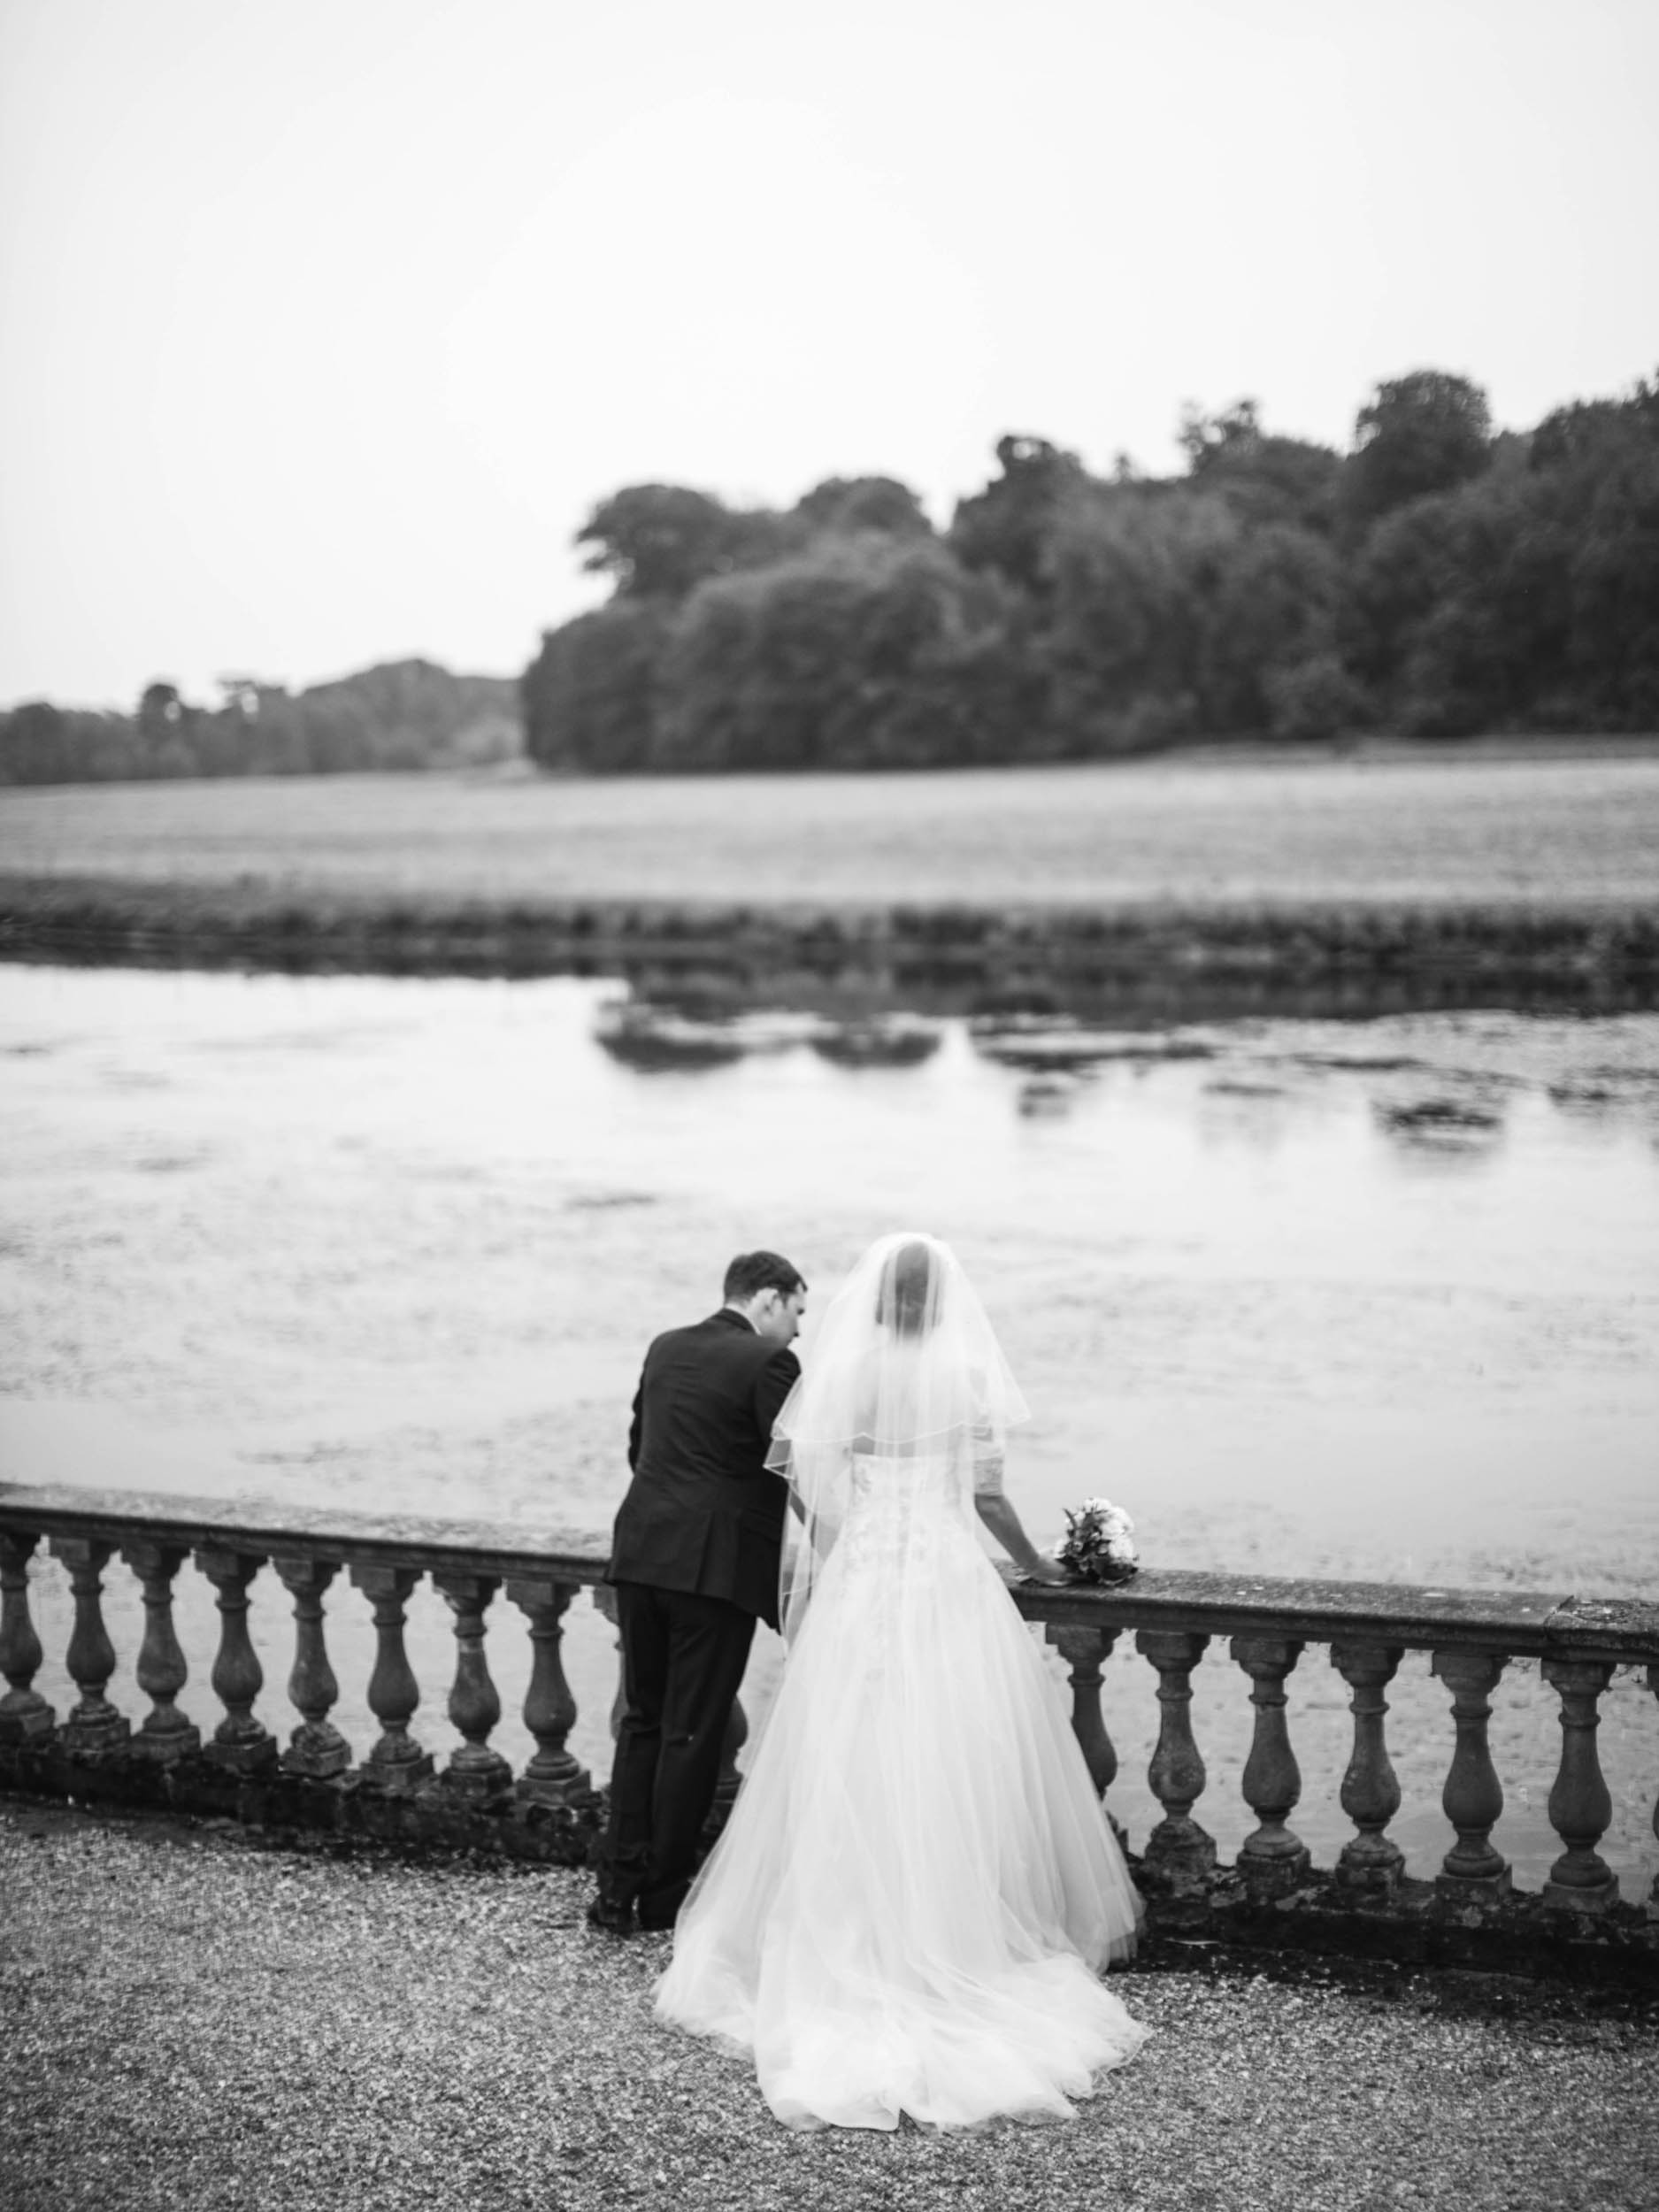 Amy O'Boyle Photography- Destination & UK Fine Art Film Wedding Photographer- Stoneleigh Abbey Wedding-54.jpg